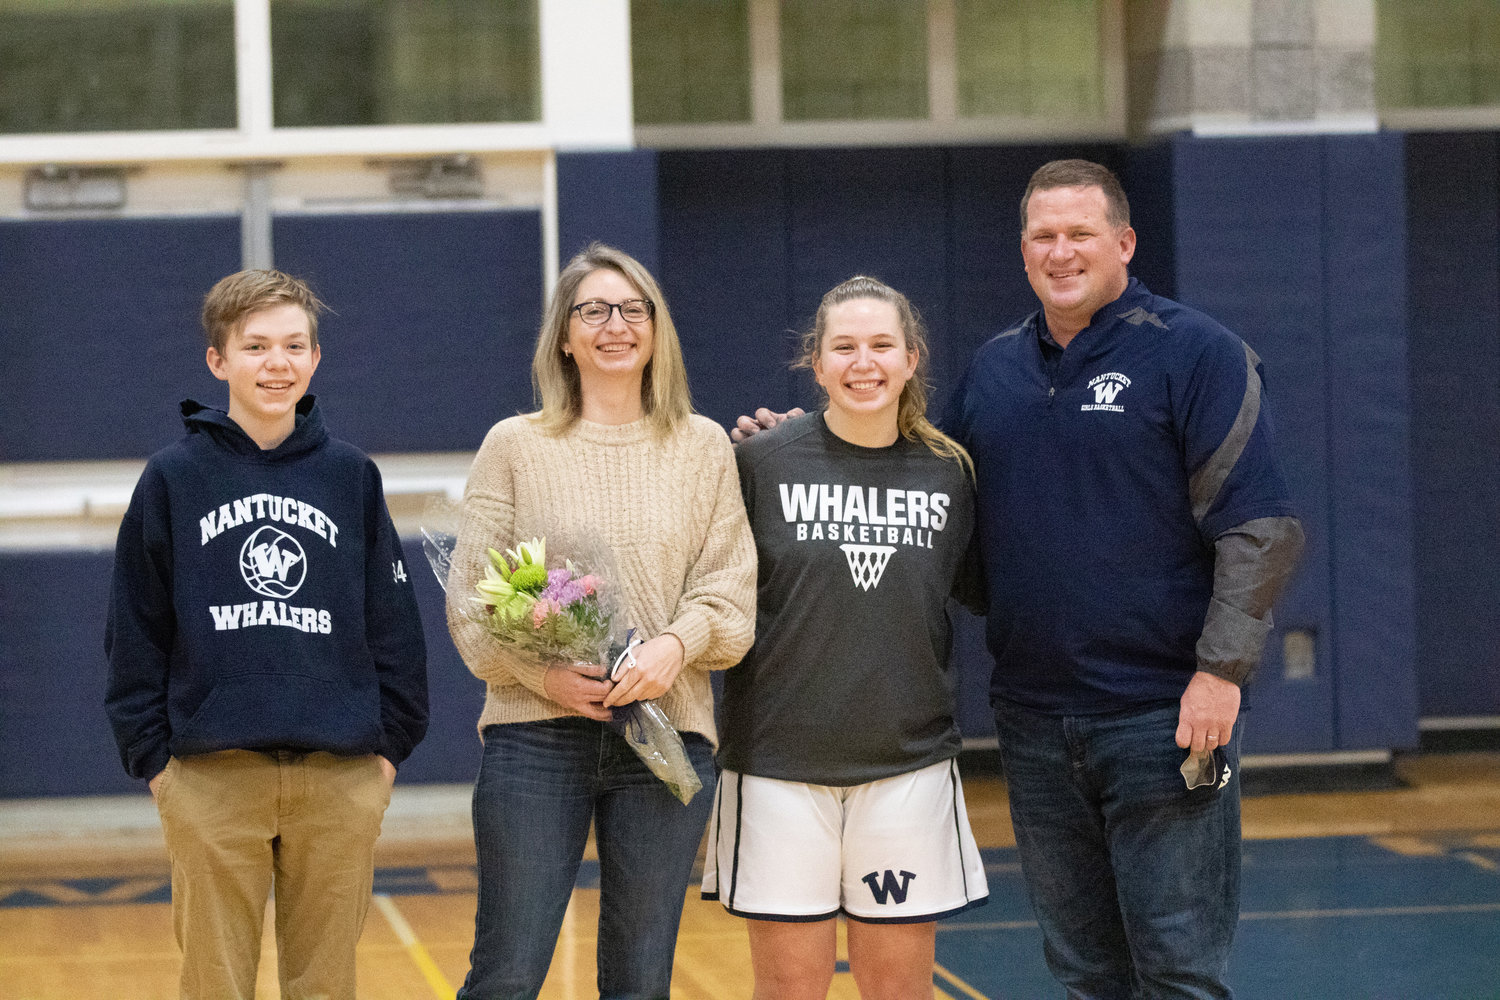 Sydney King and her family on senior night